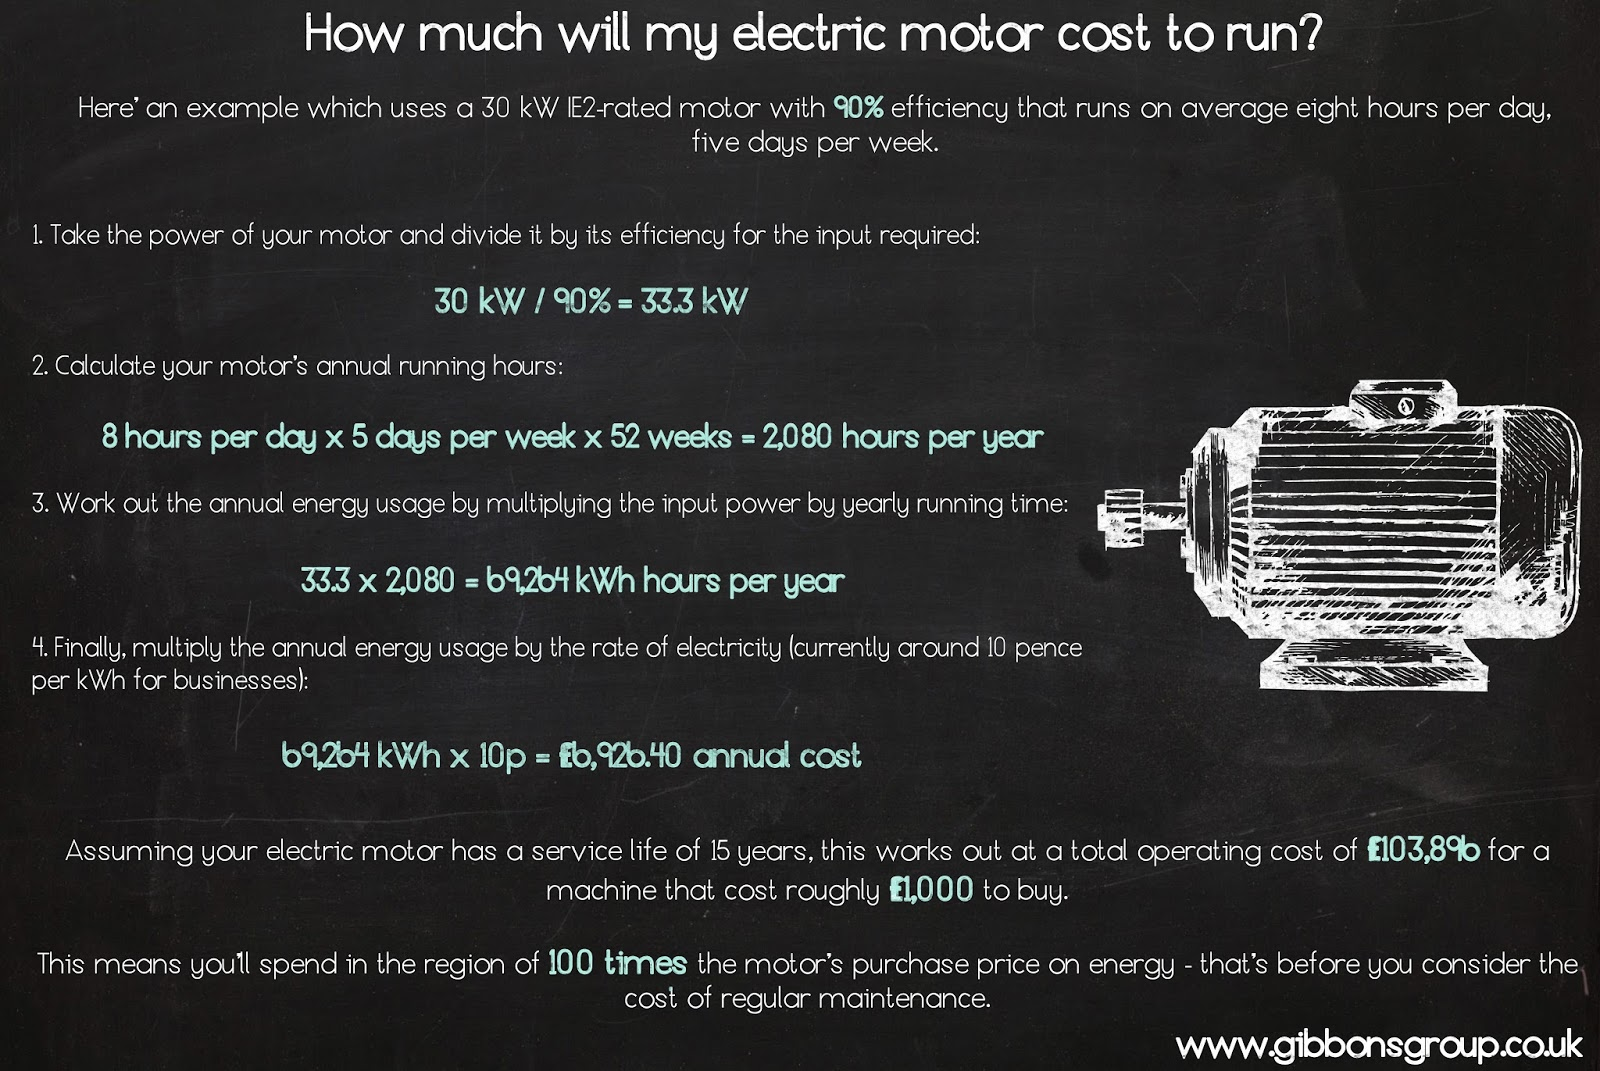 While You Want To Pay The Lowest Price For Your Electric Motor It S Important Look Beyond Up Front Outlay And Think About How Much Will Cost